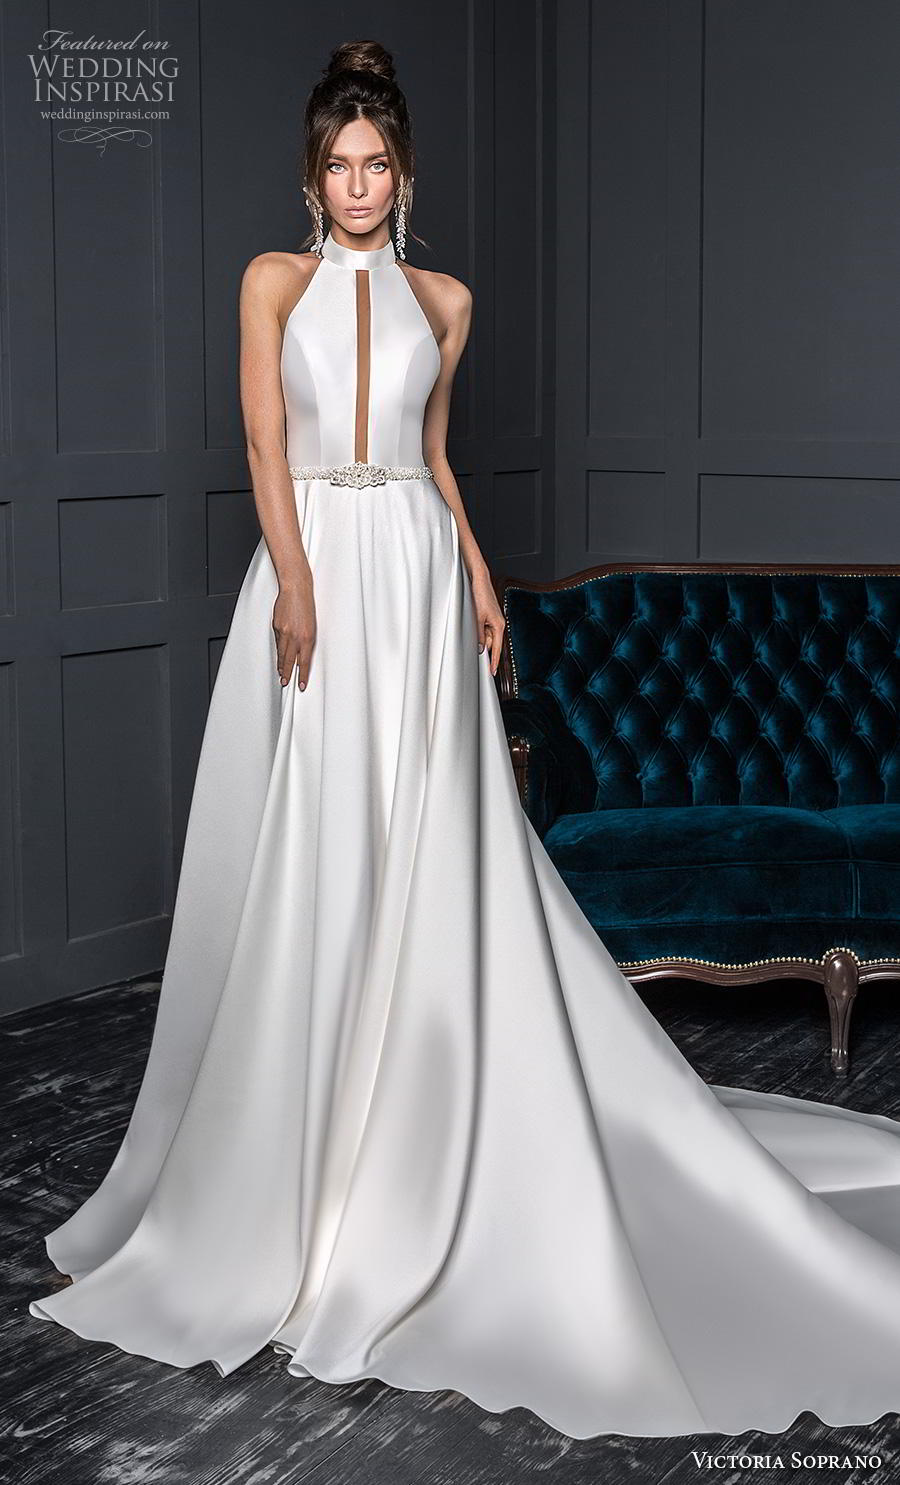 victoria soprano 2020 bridal sleeveless halter neck jewel neckline slit bodice simple clean minimalist elegant a line wedding dress backless chapel train (15) mv